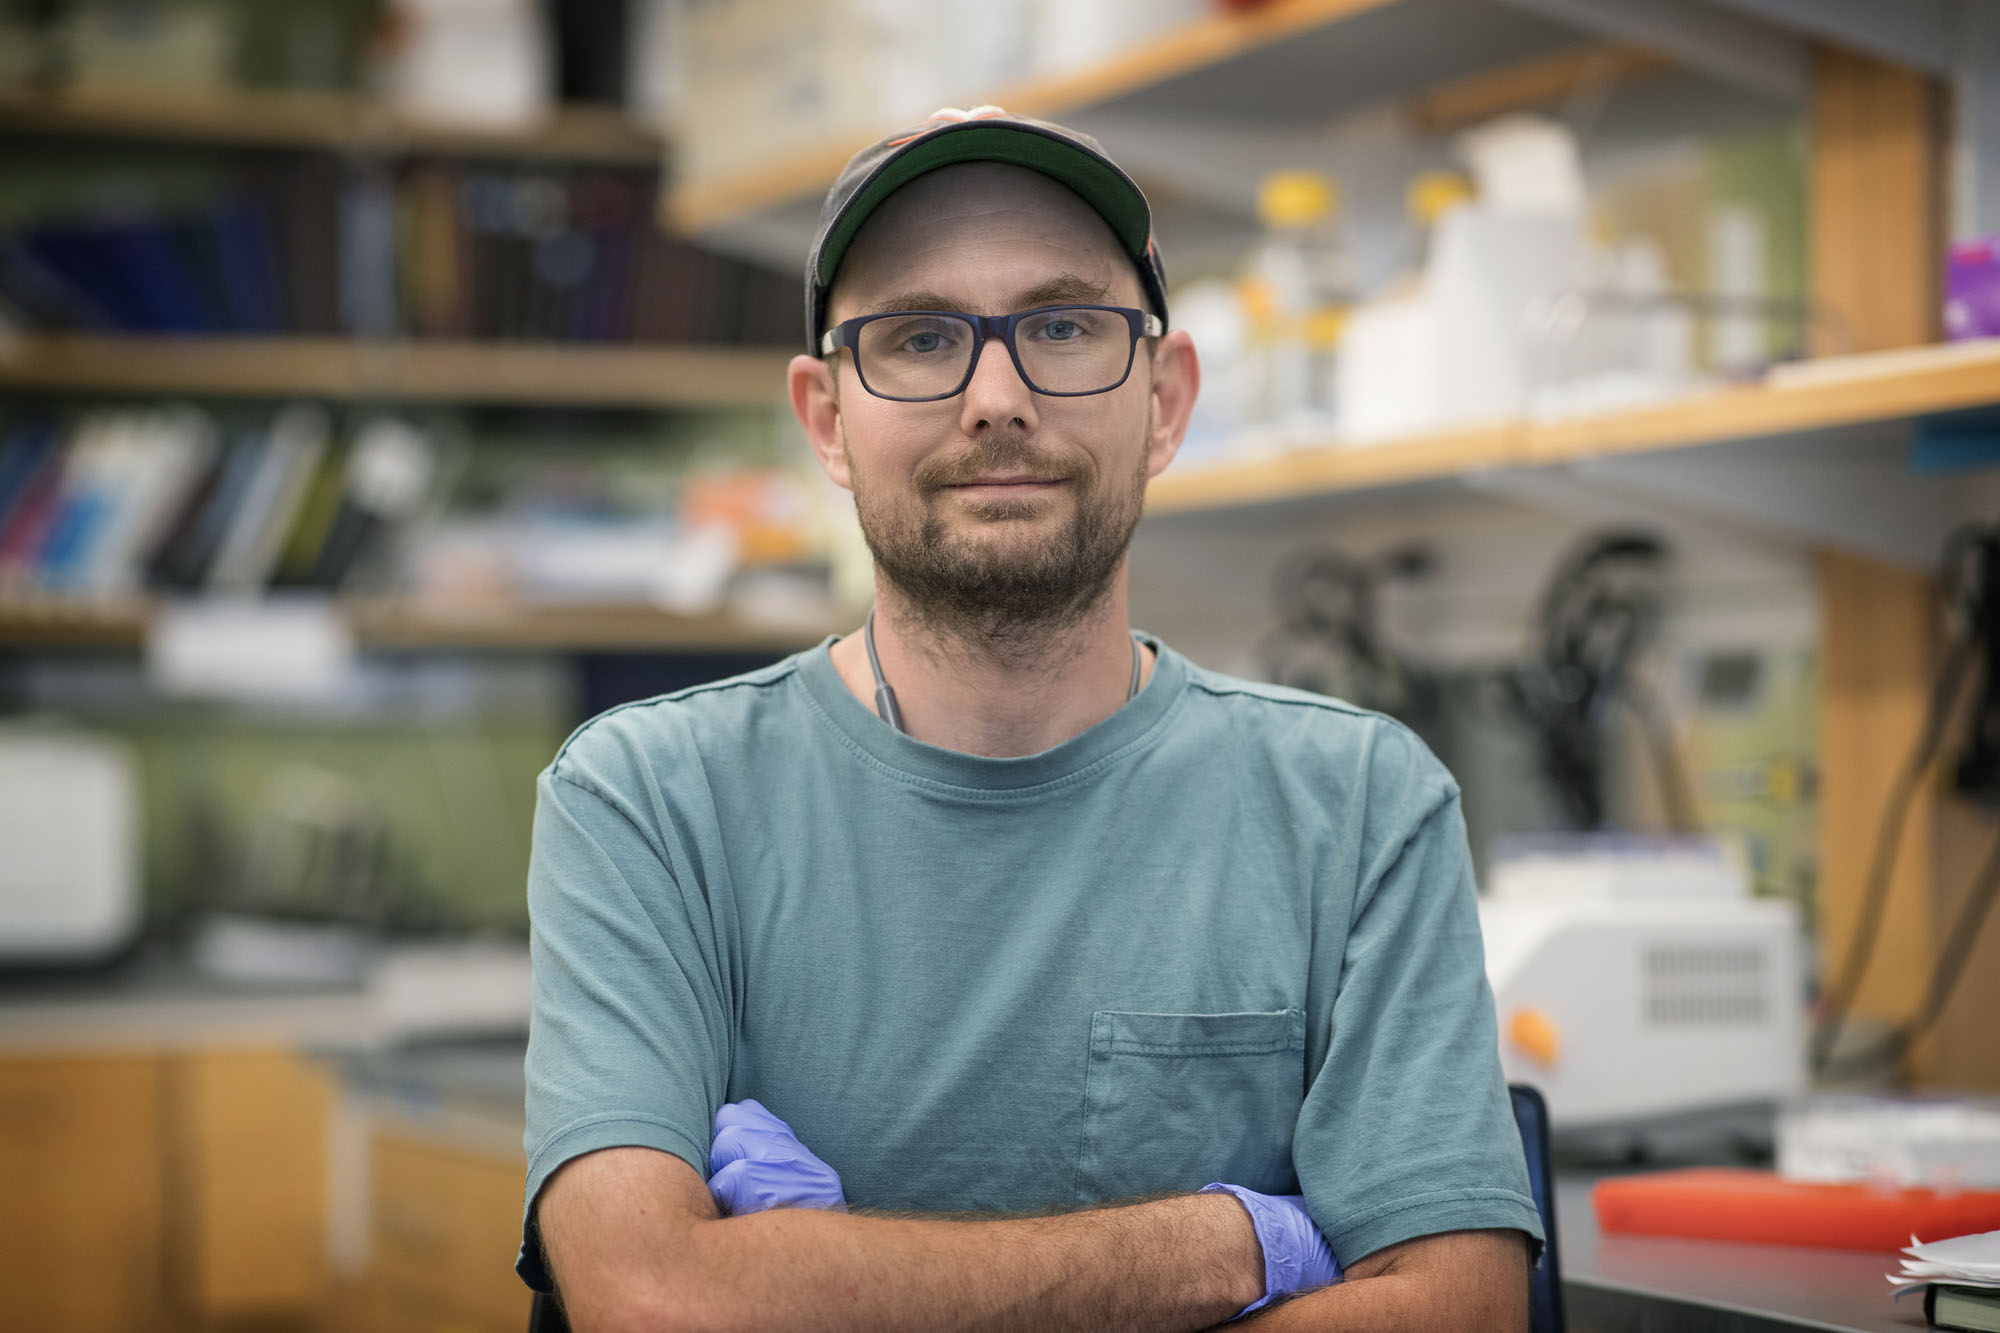 Andrew Aman, a postdoctoral researcher in biology, led the study.